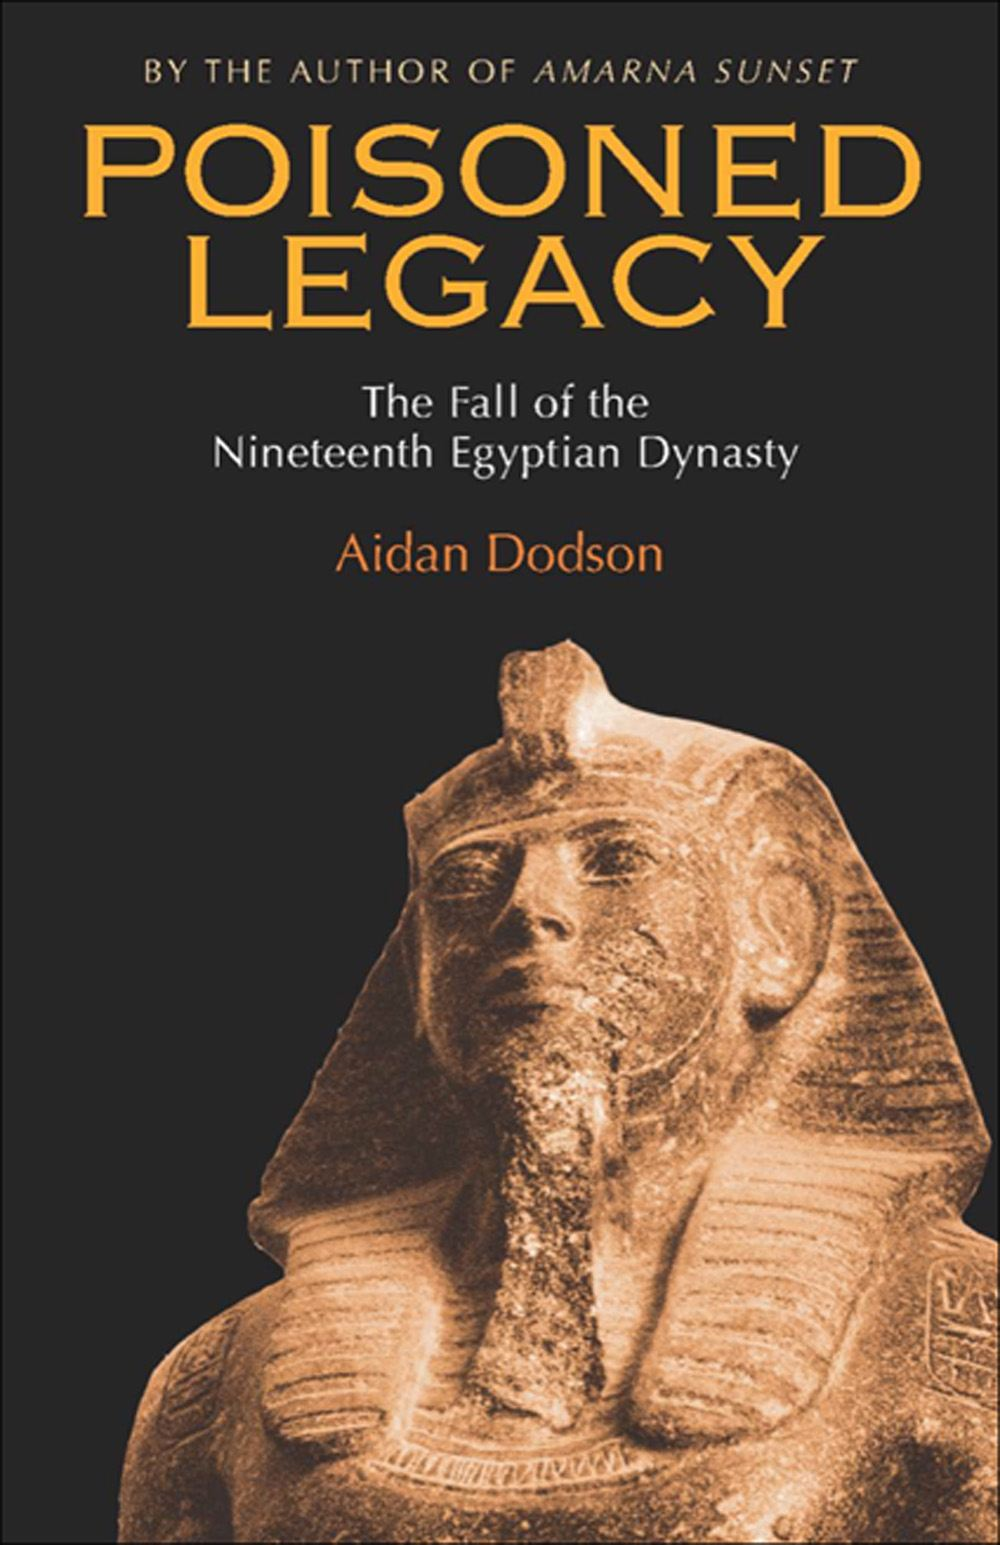 Poisoned Legacy:The Fall of the Nineteenth Egyptian Dynasty